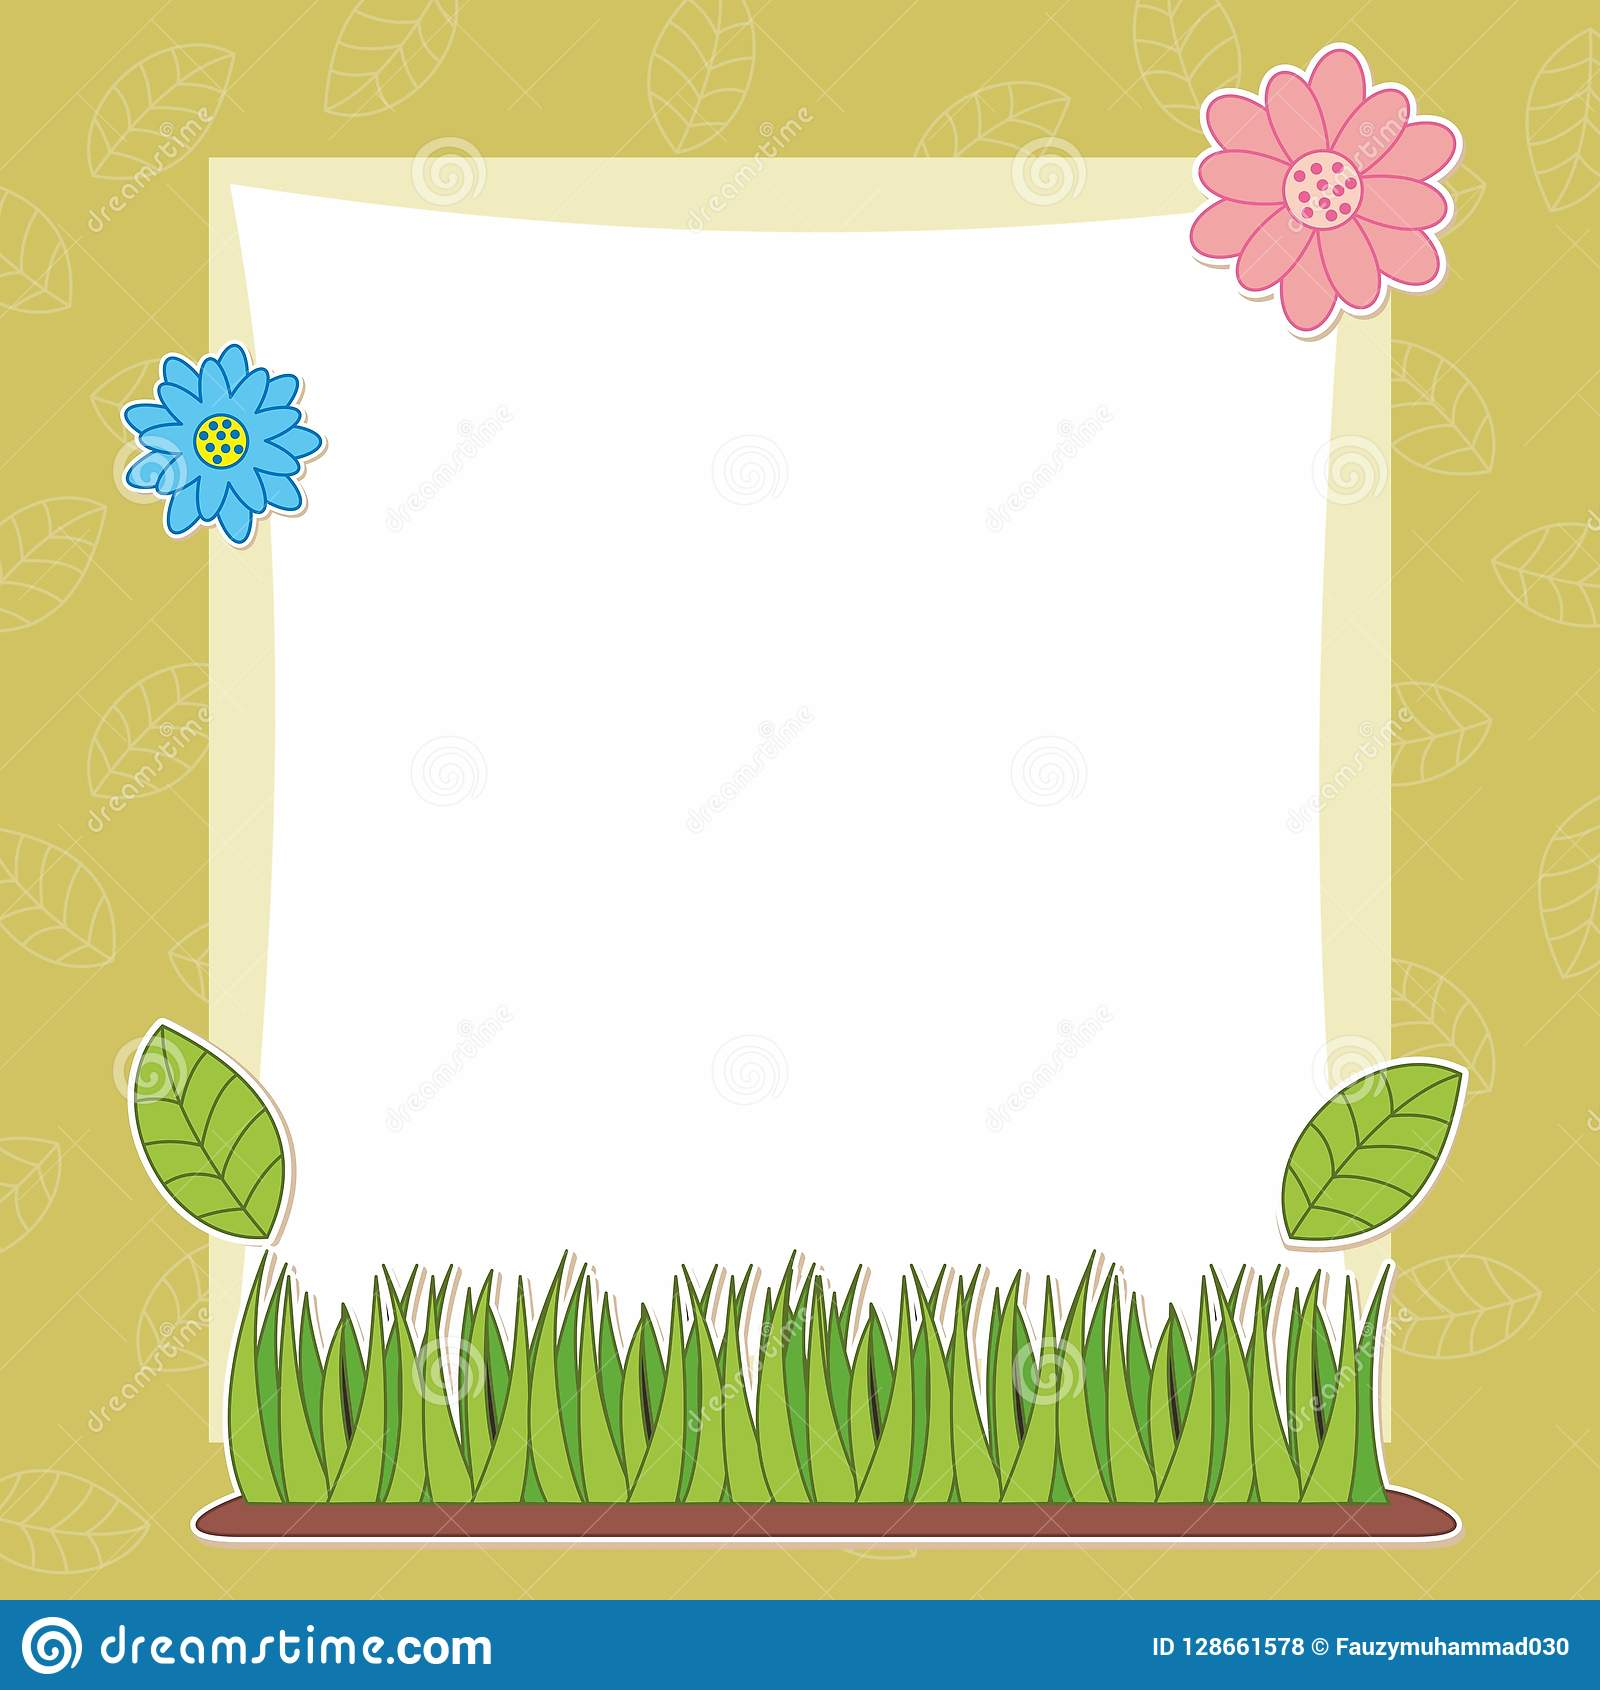 Blank Colorful Cute Flower Frame Design Background Stock